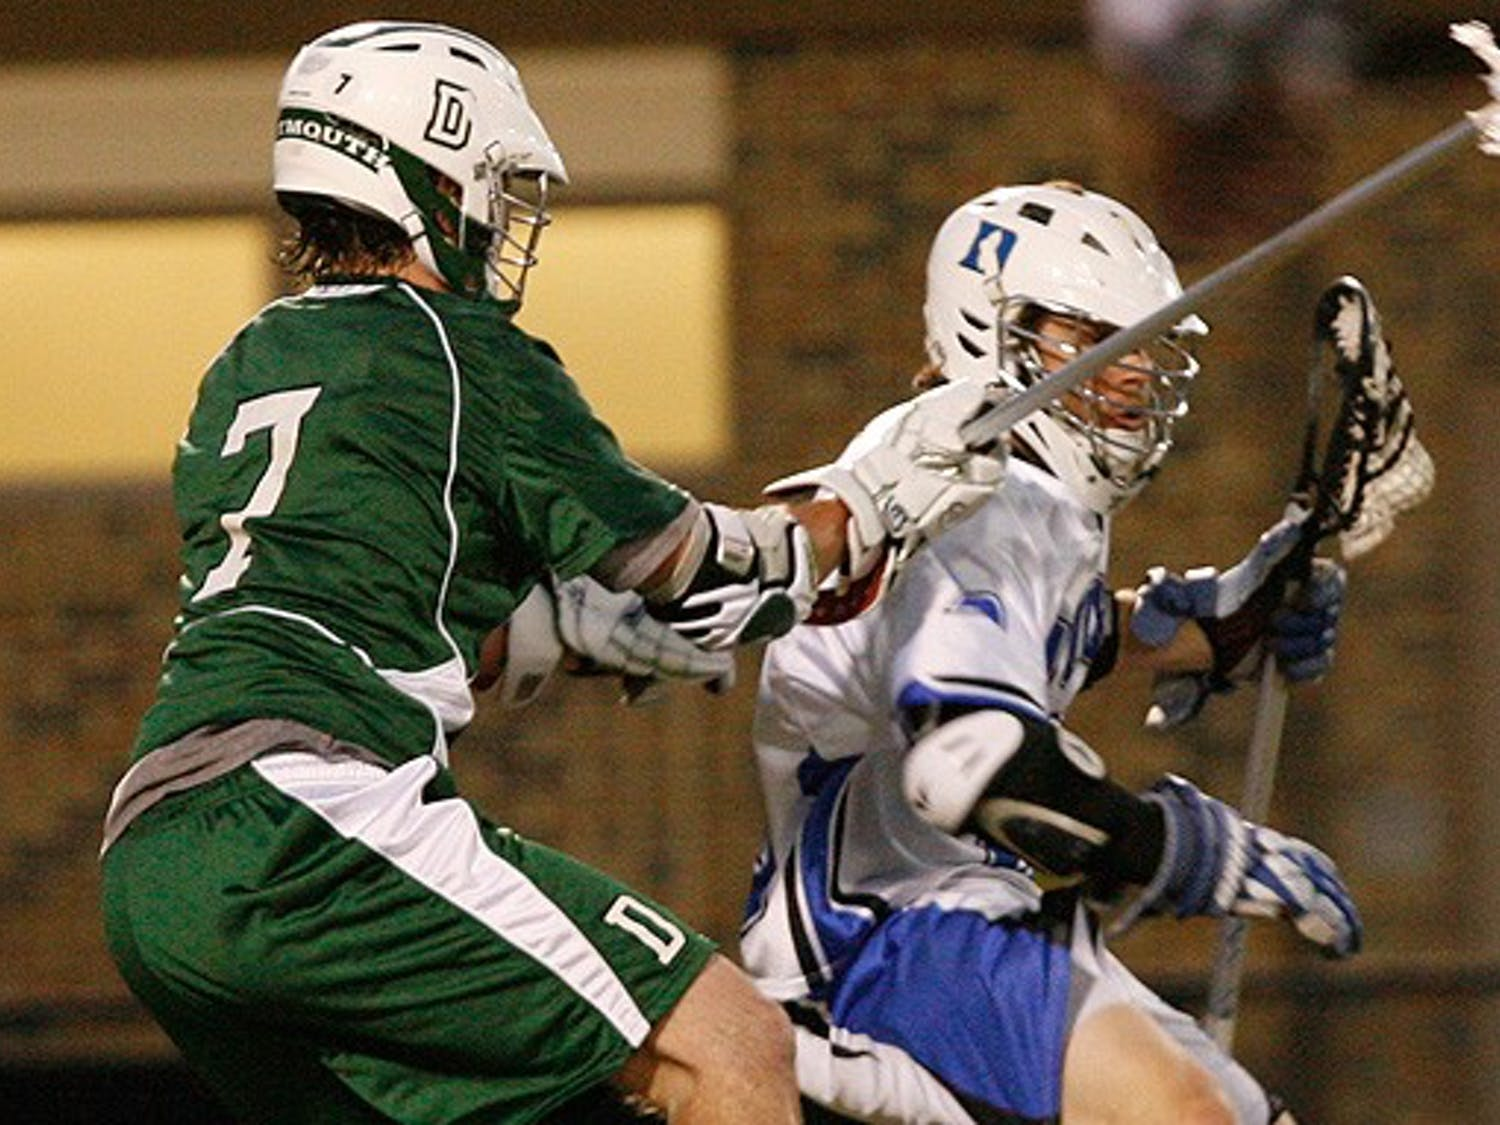 """There's no """"i"""" in team, but there is an """"i"""" in obliterate. And that's exactly what No. 10 Duke did Tuesday night, using suffocating defense and a relentless attack to overwhelm Dartmouth at Koskinen Stadium."""